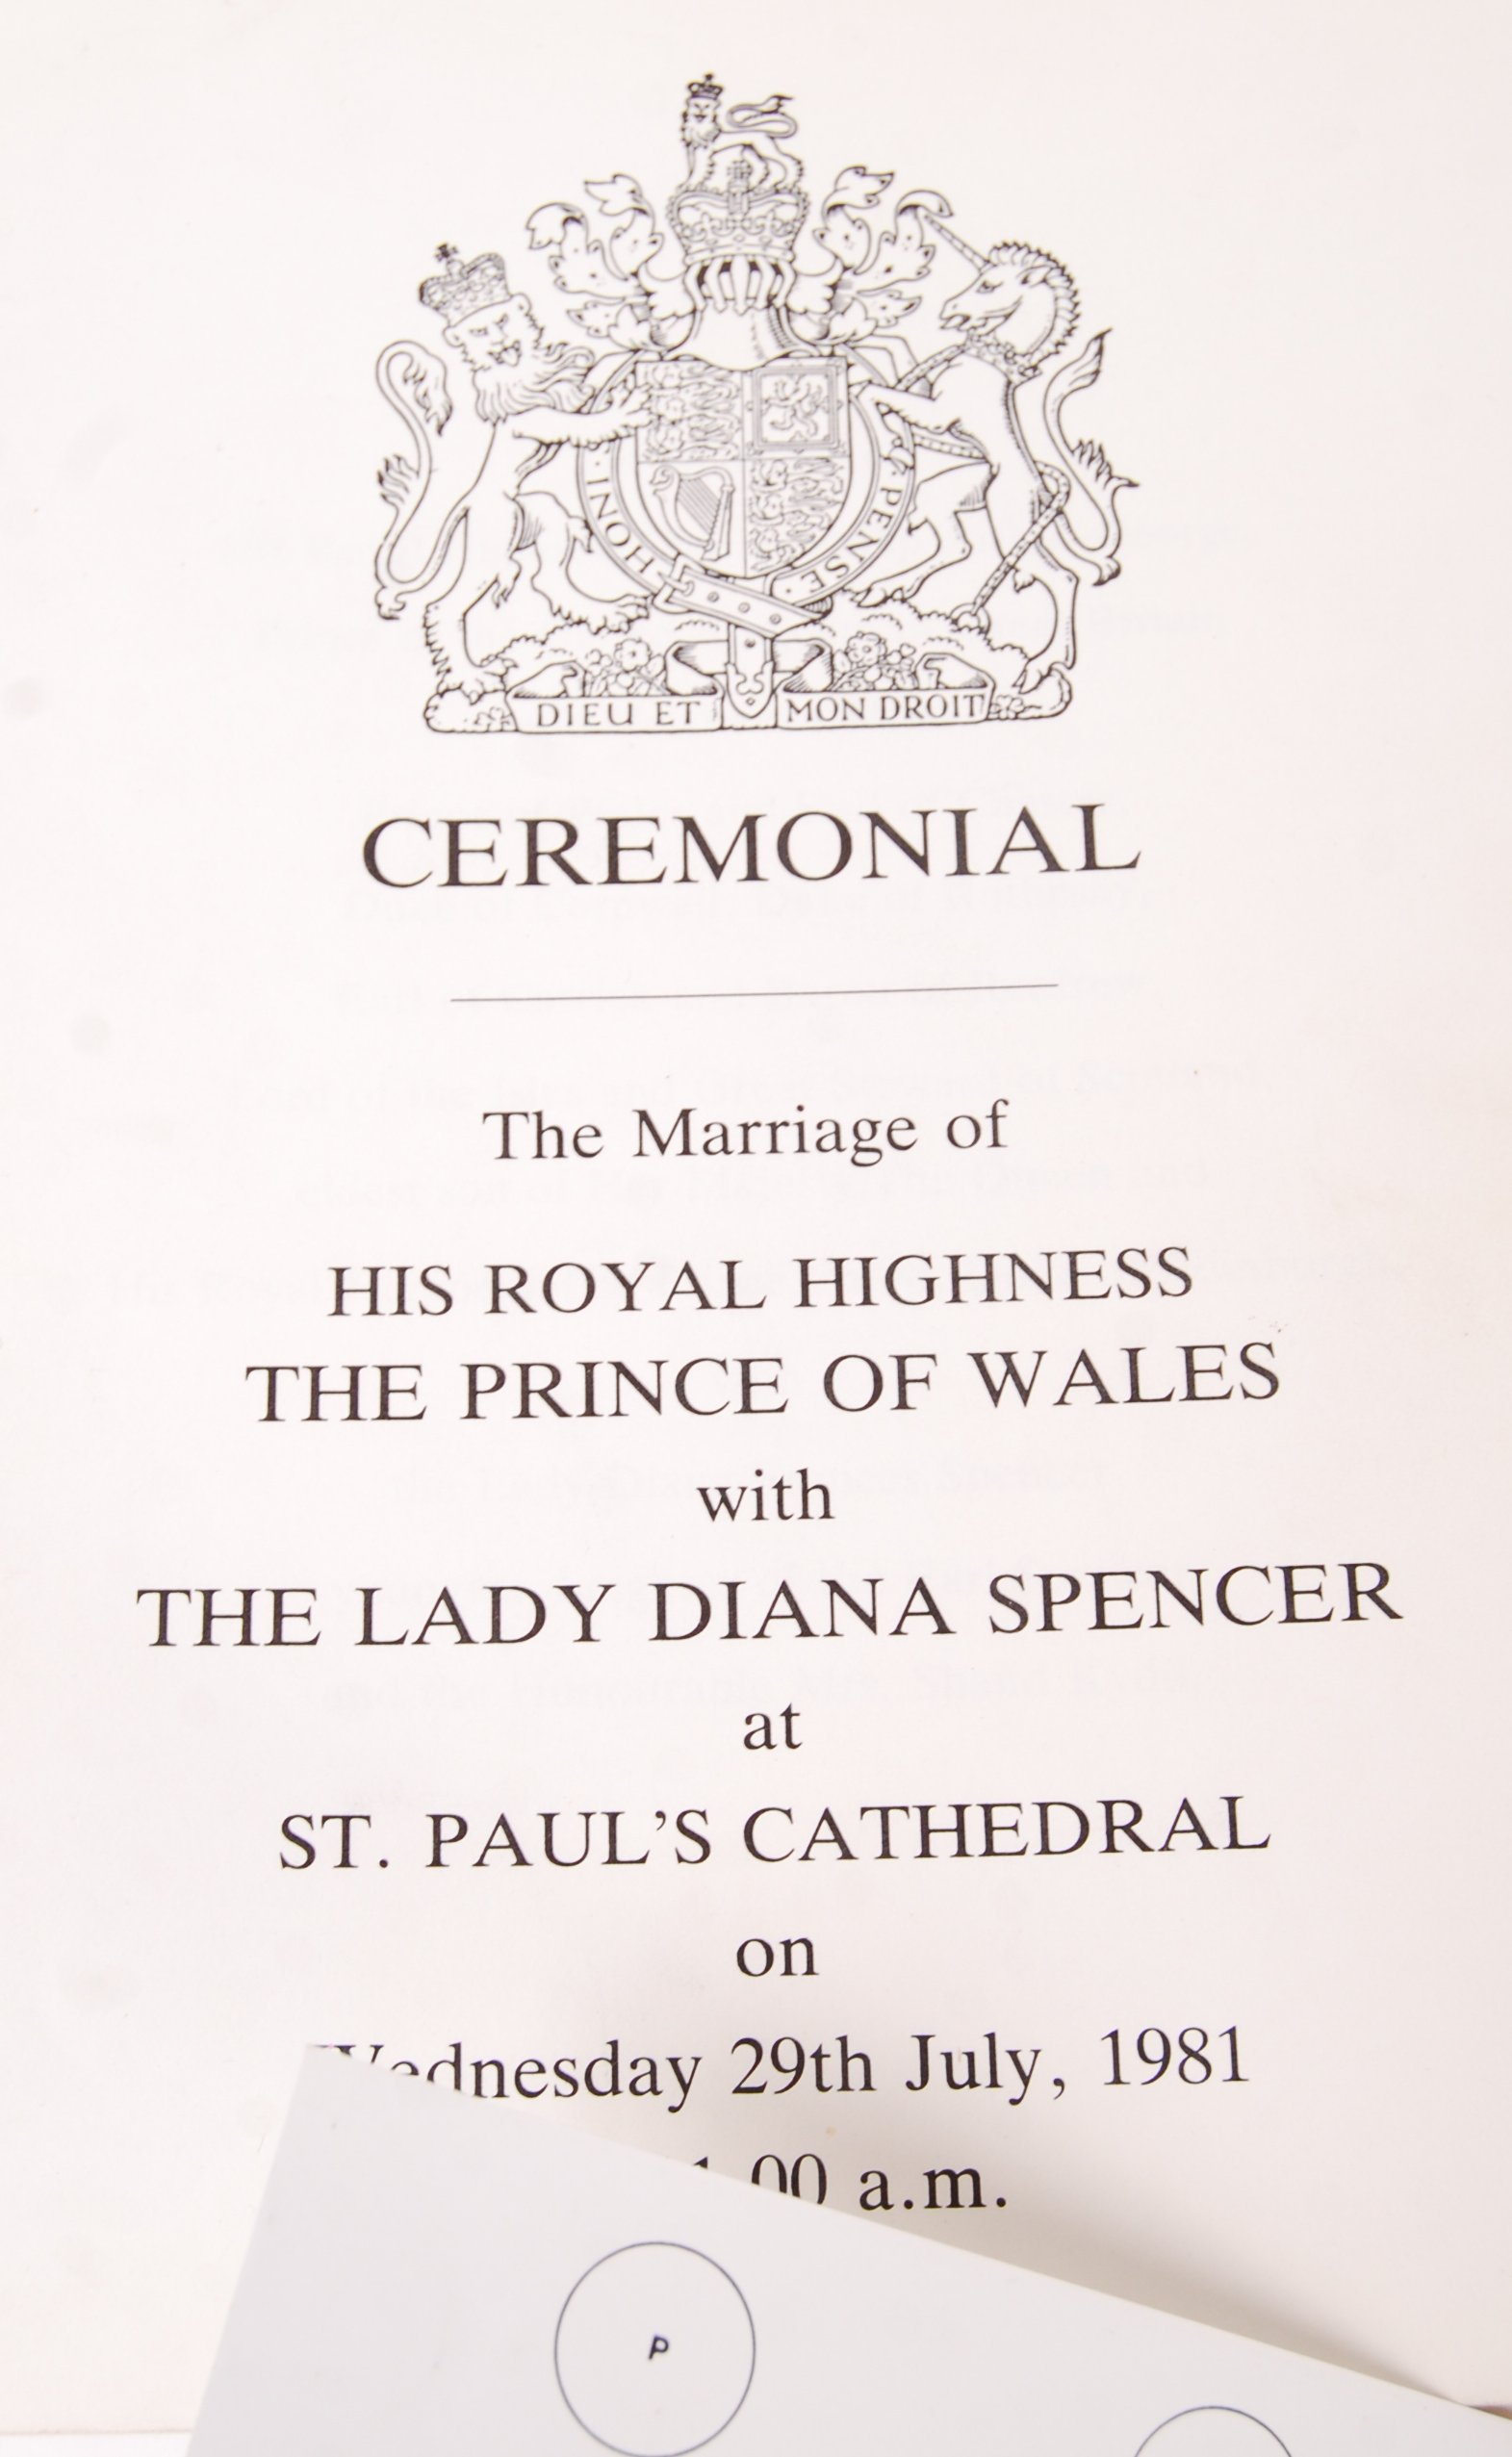 MARRIAGE OF THE PRINCE OF WALES & LADY DIANA SPENCER WEDDING EPHEMERA - Image 2 of 6